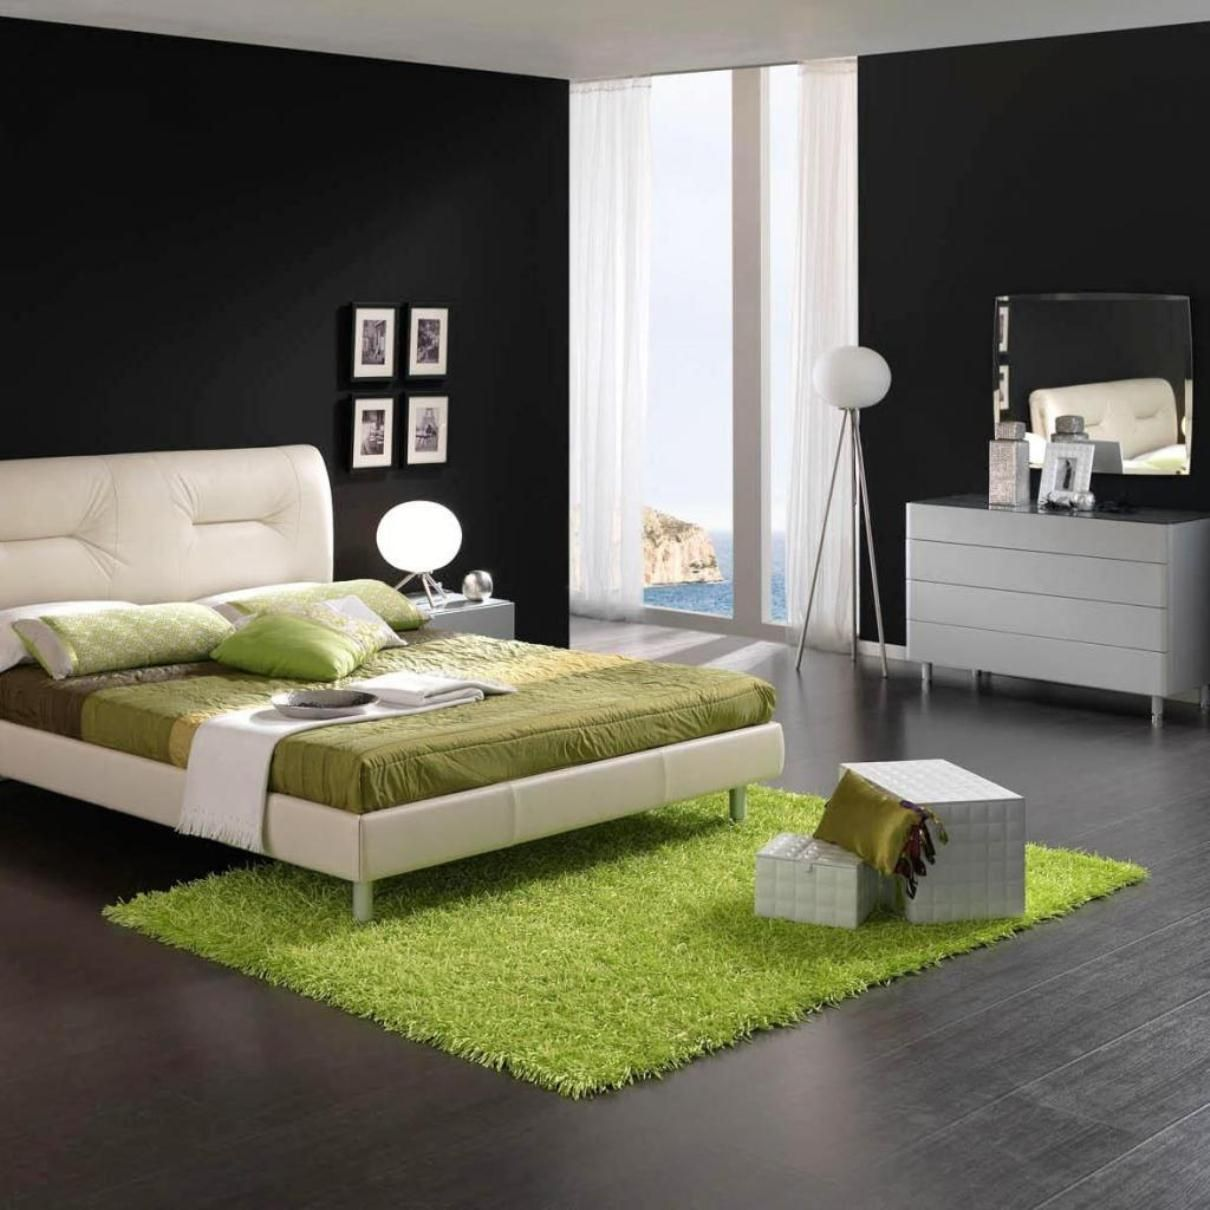 contemporary bedroom design with black wall and grey floor also